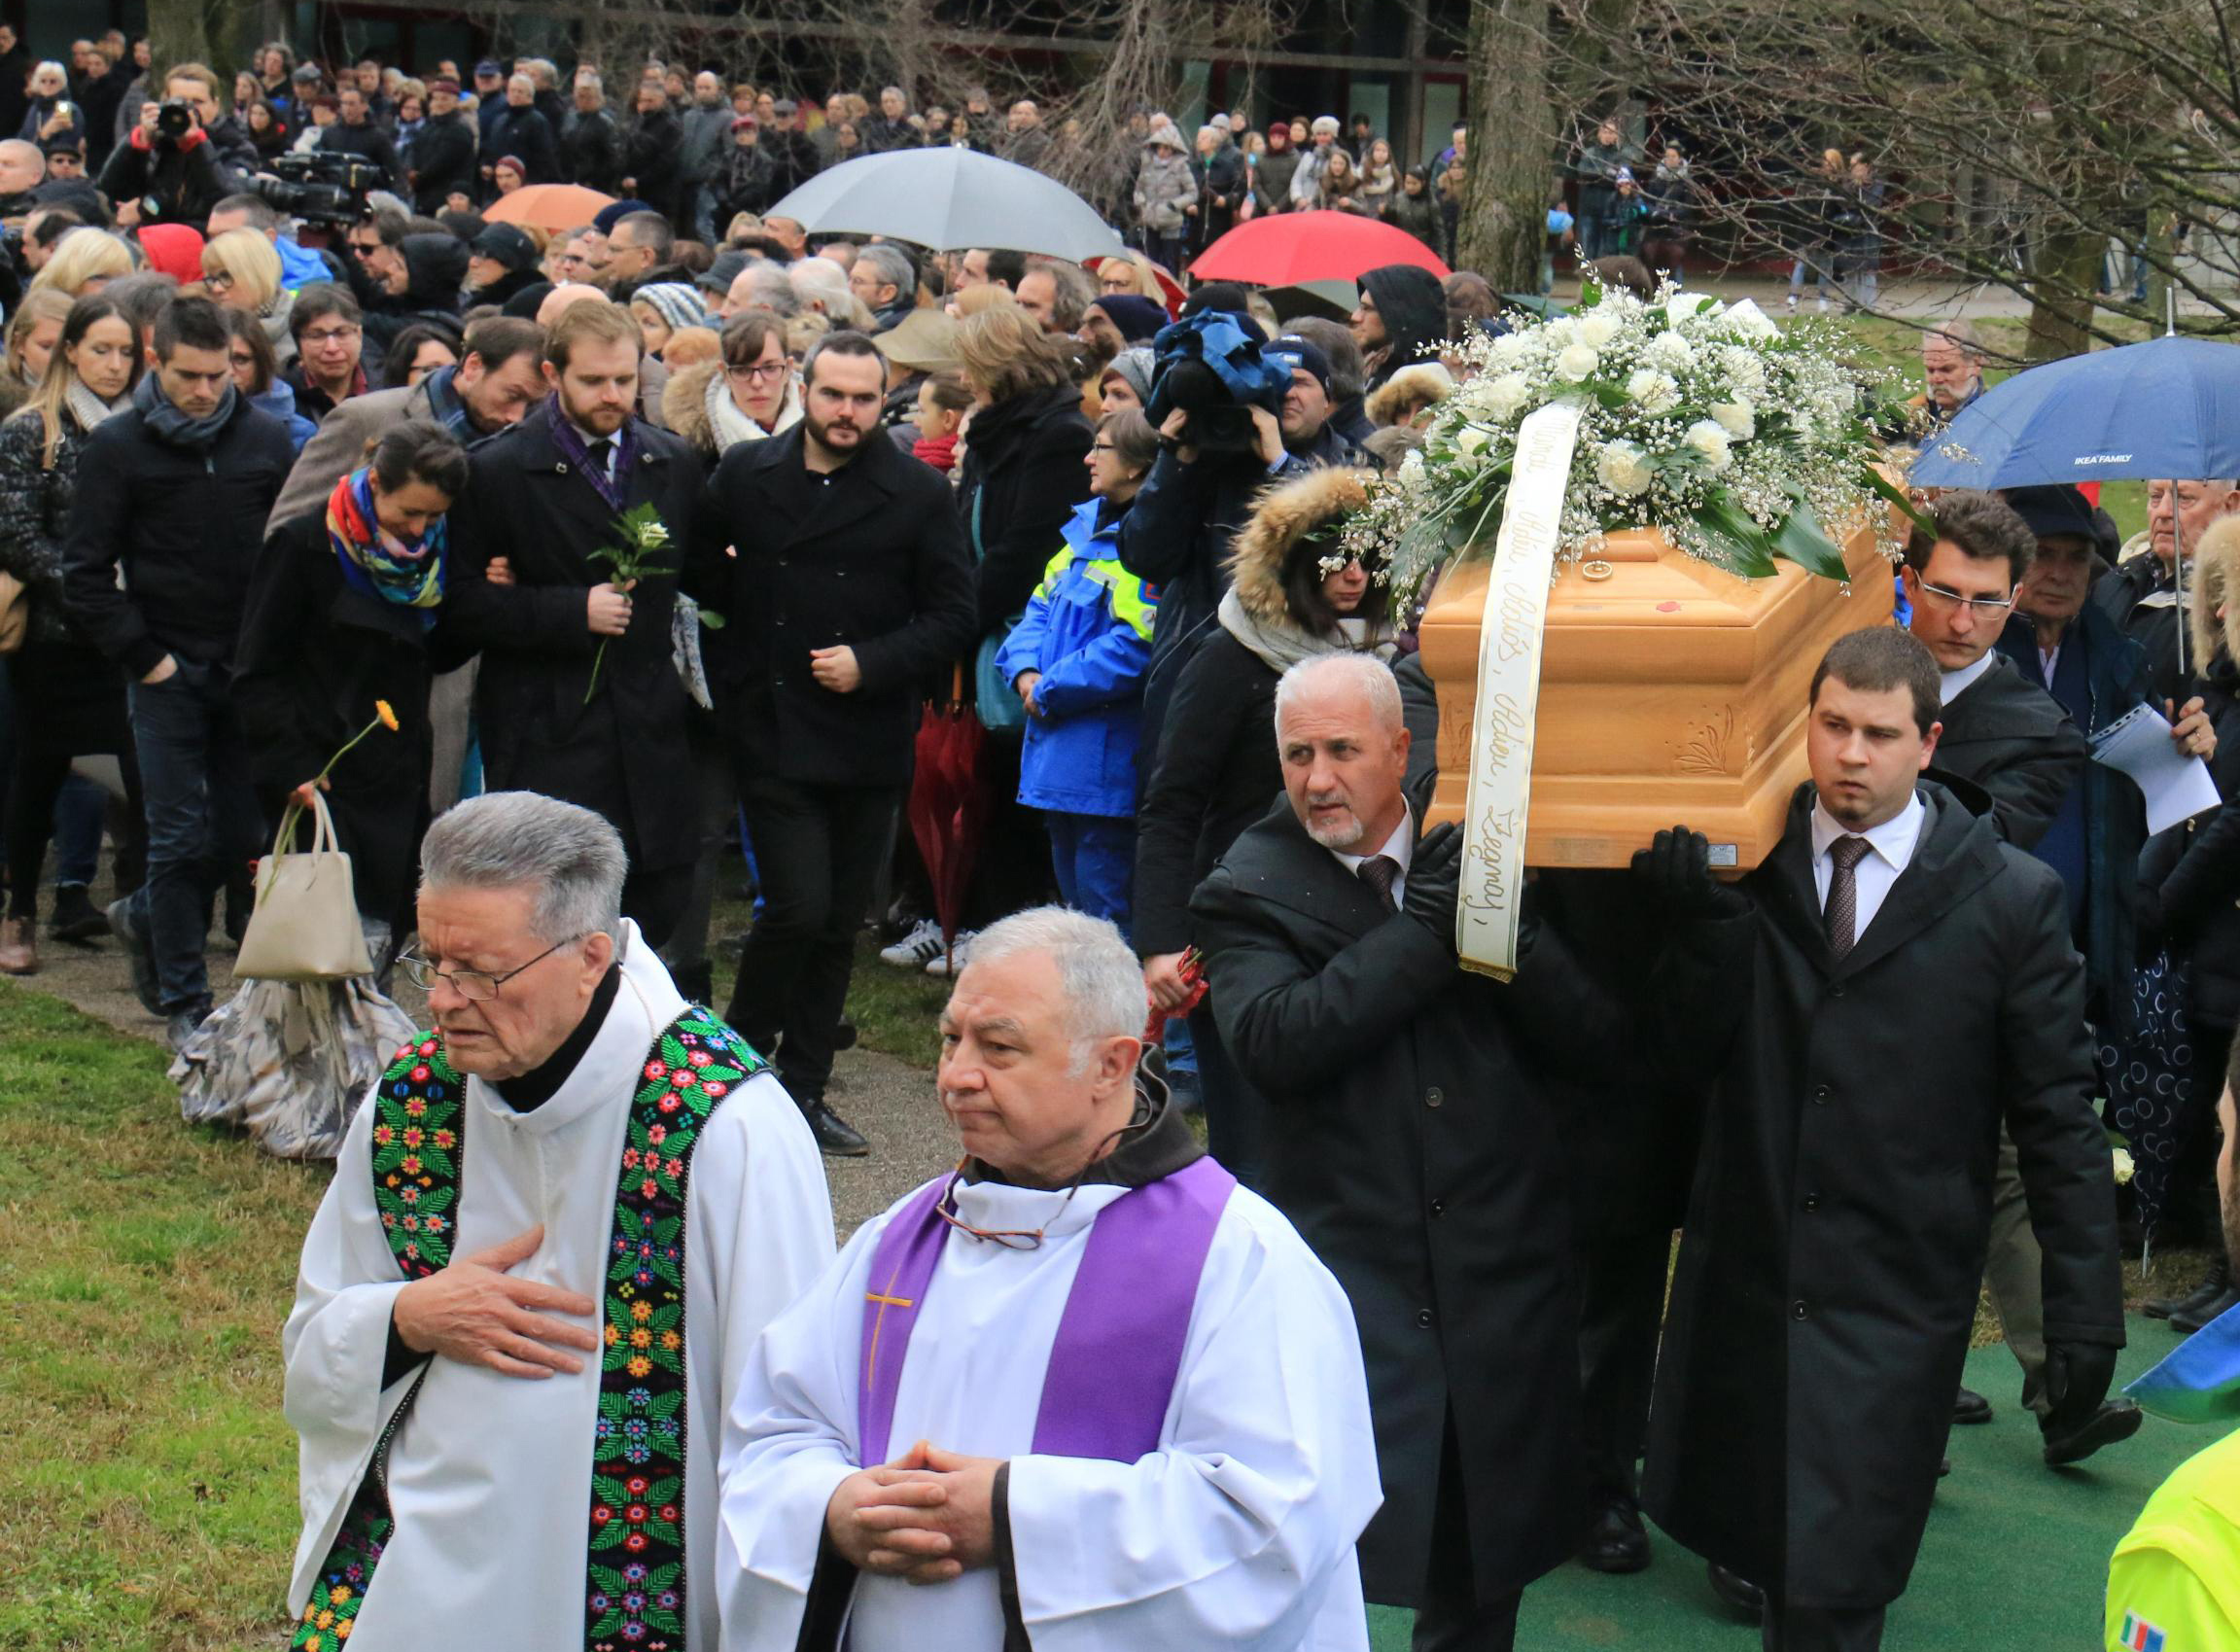 Mourners follow the casket holding the body of Italian graduate student Giulio Regeni, who was found dead in Egypt, during his funeral in Fiumicello, northern Italy, Feb. 12, 2016.